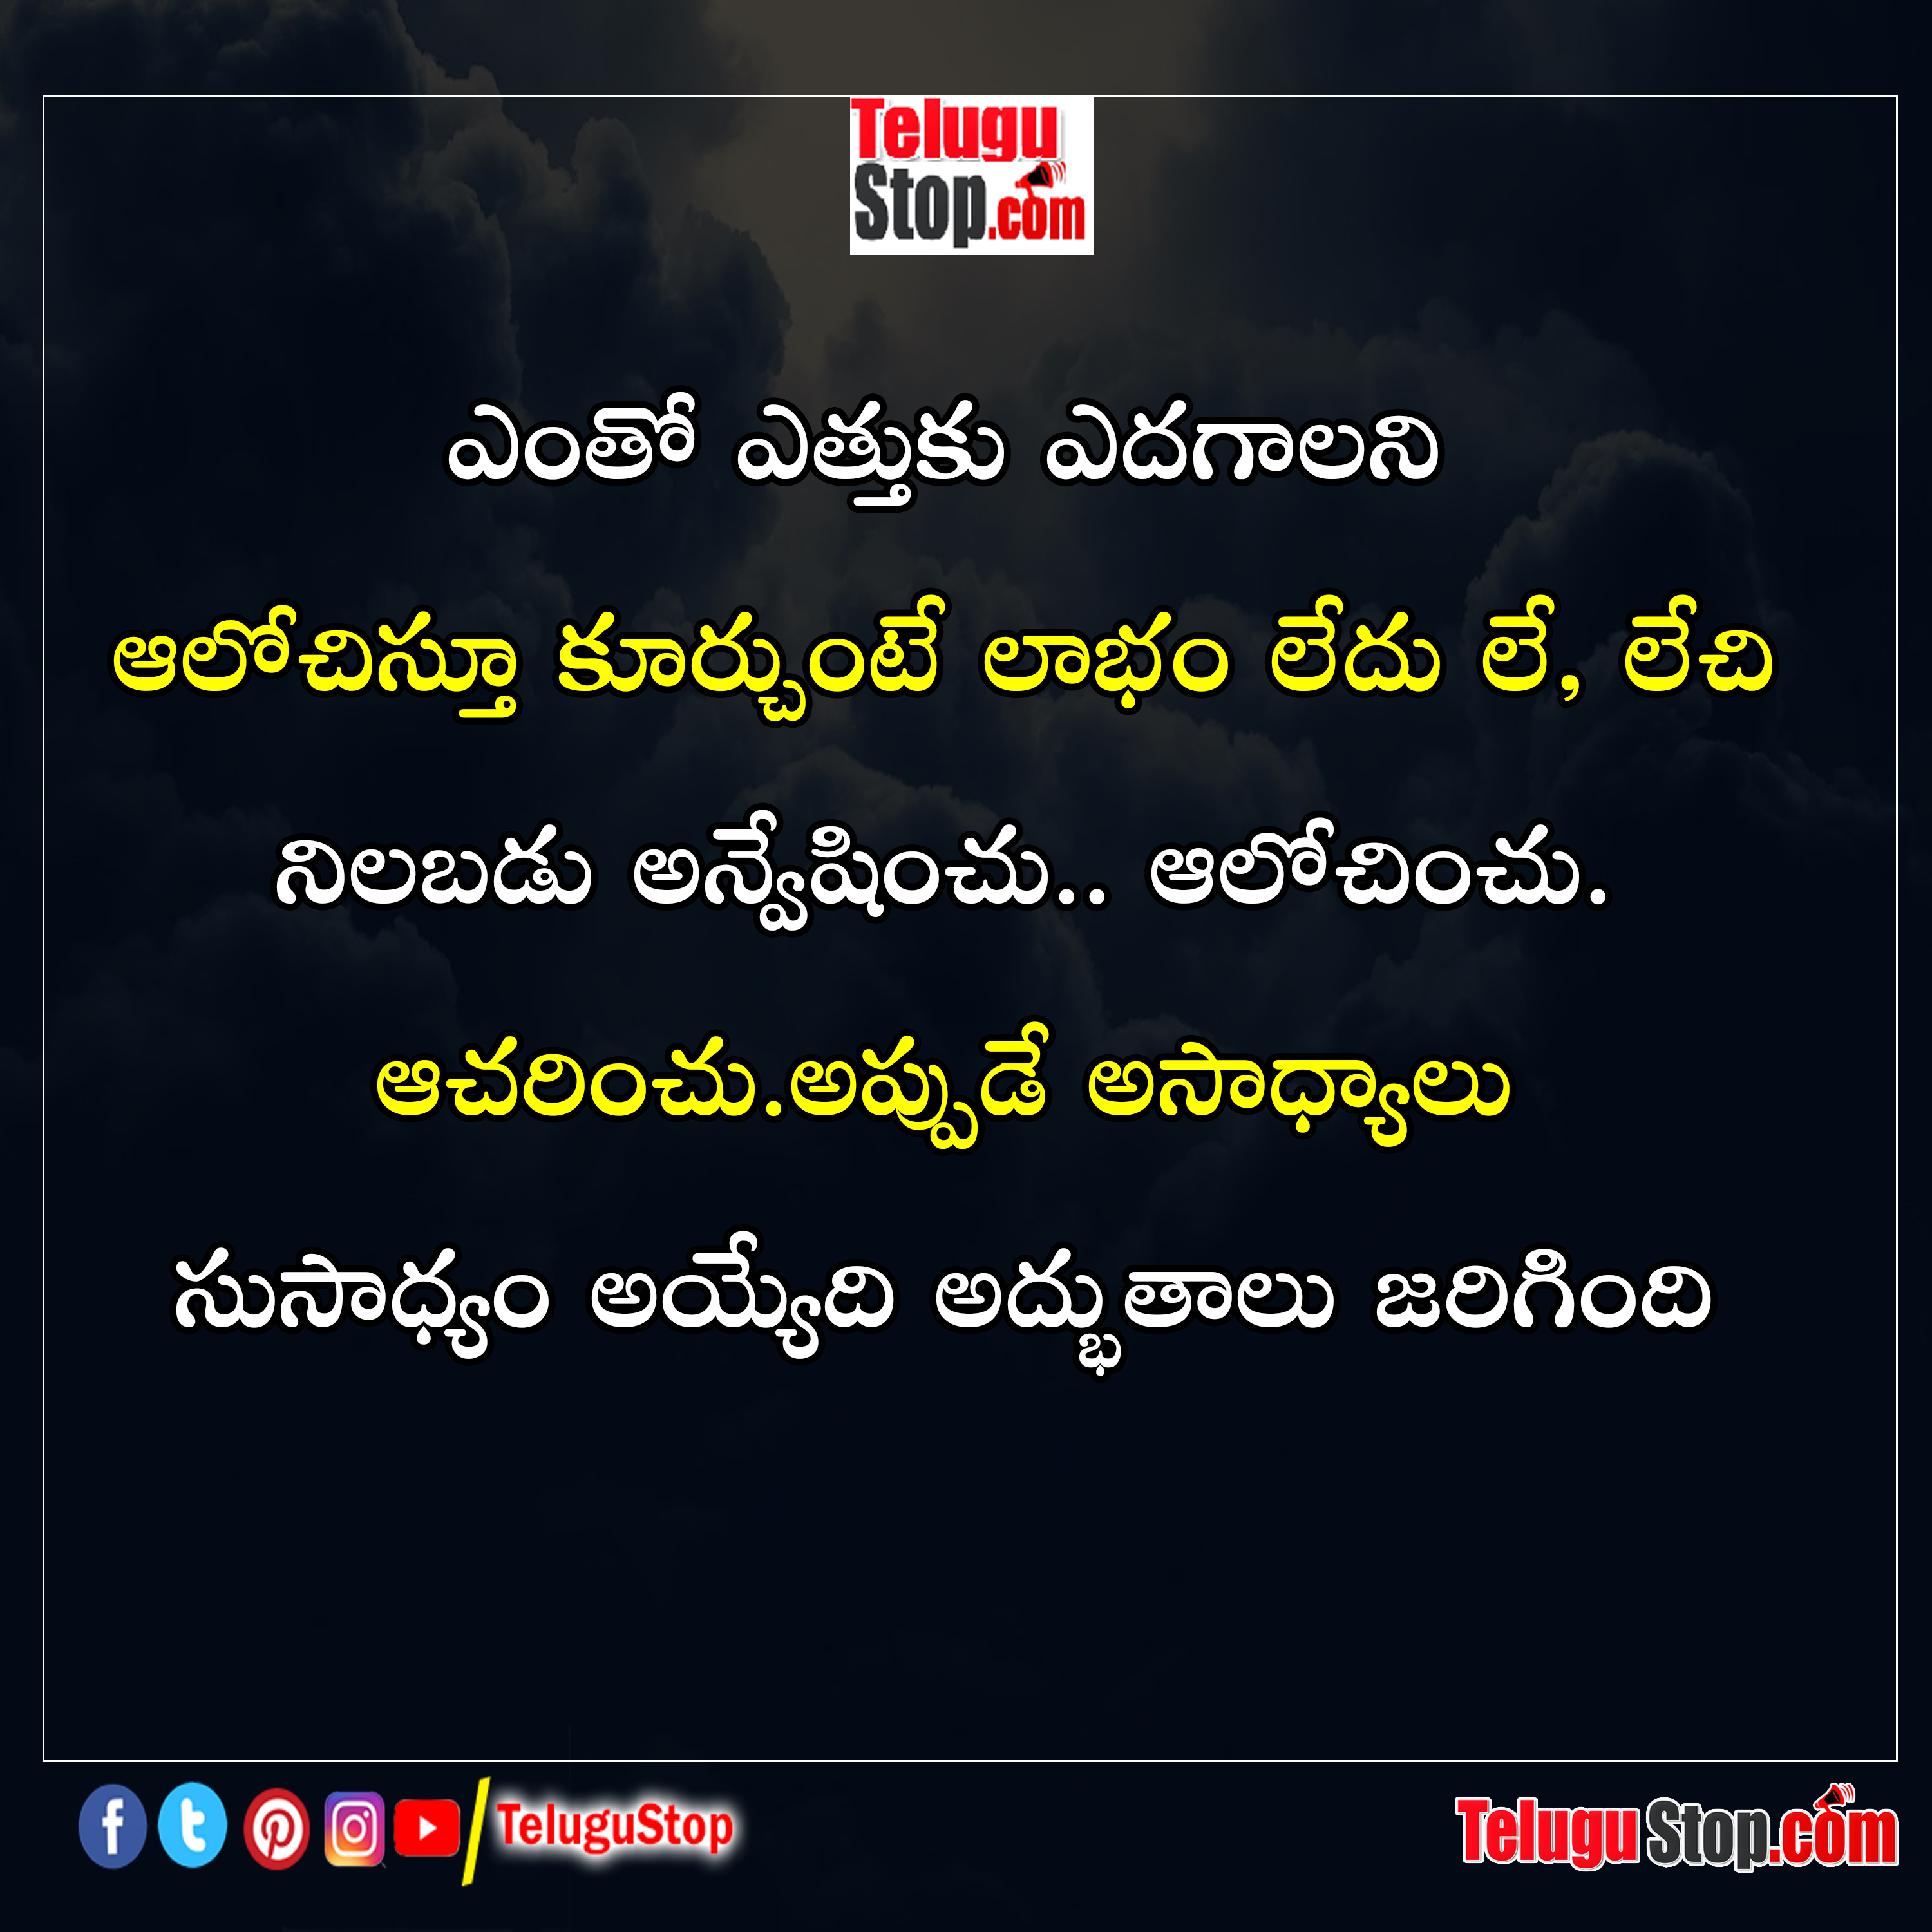 life journey meaning quotes in telugu inspirational quotes